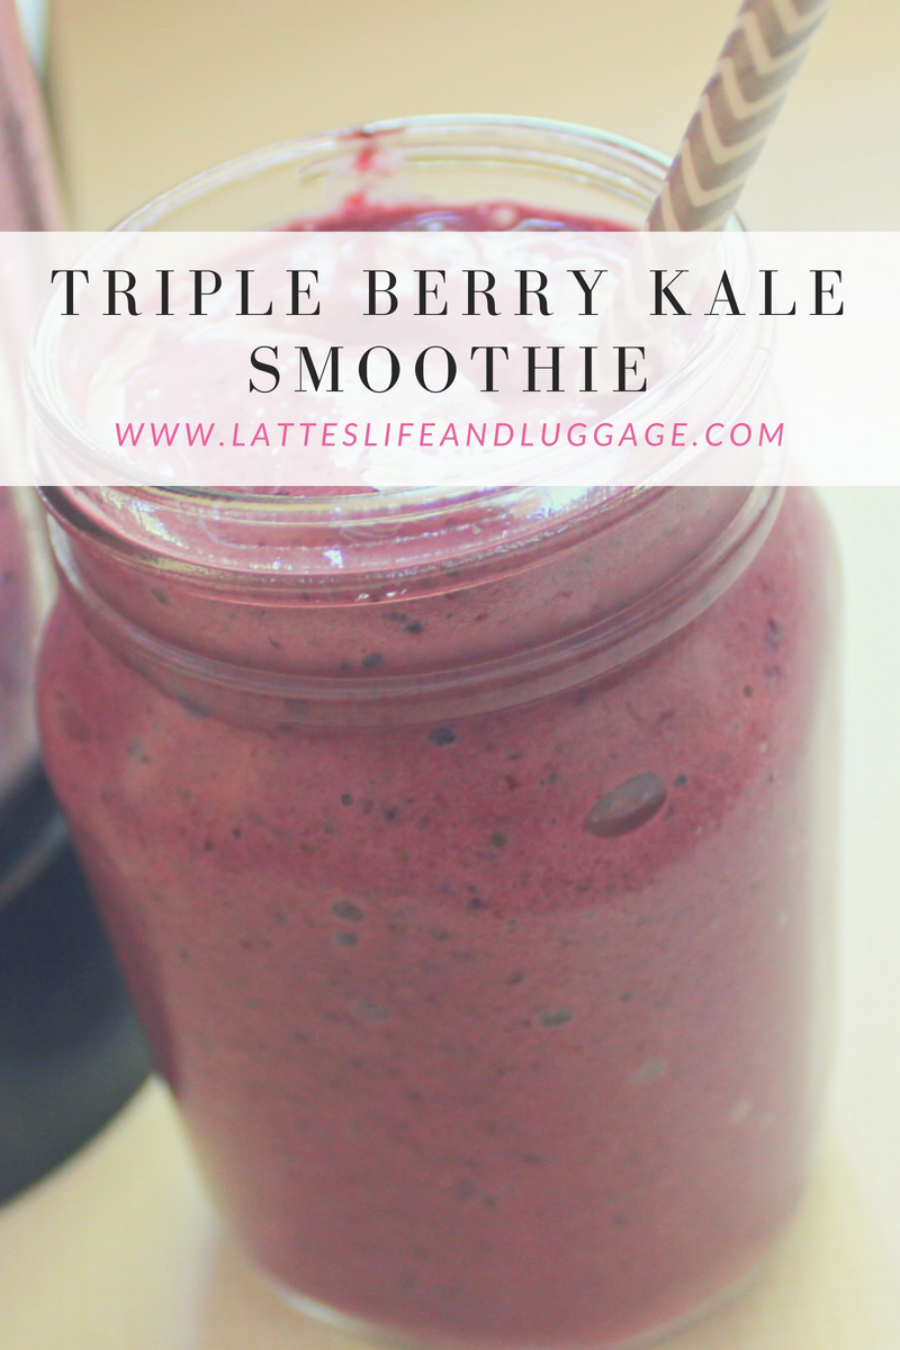 Triple Berry Kale Smoothie.png